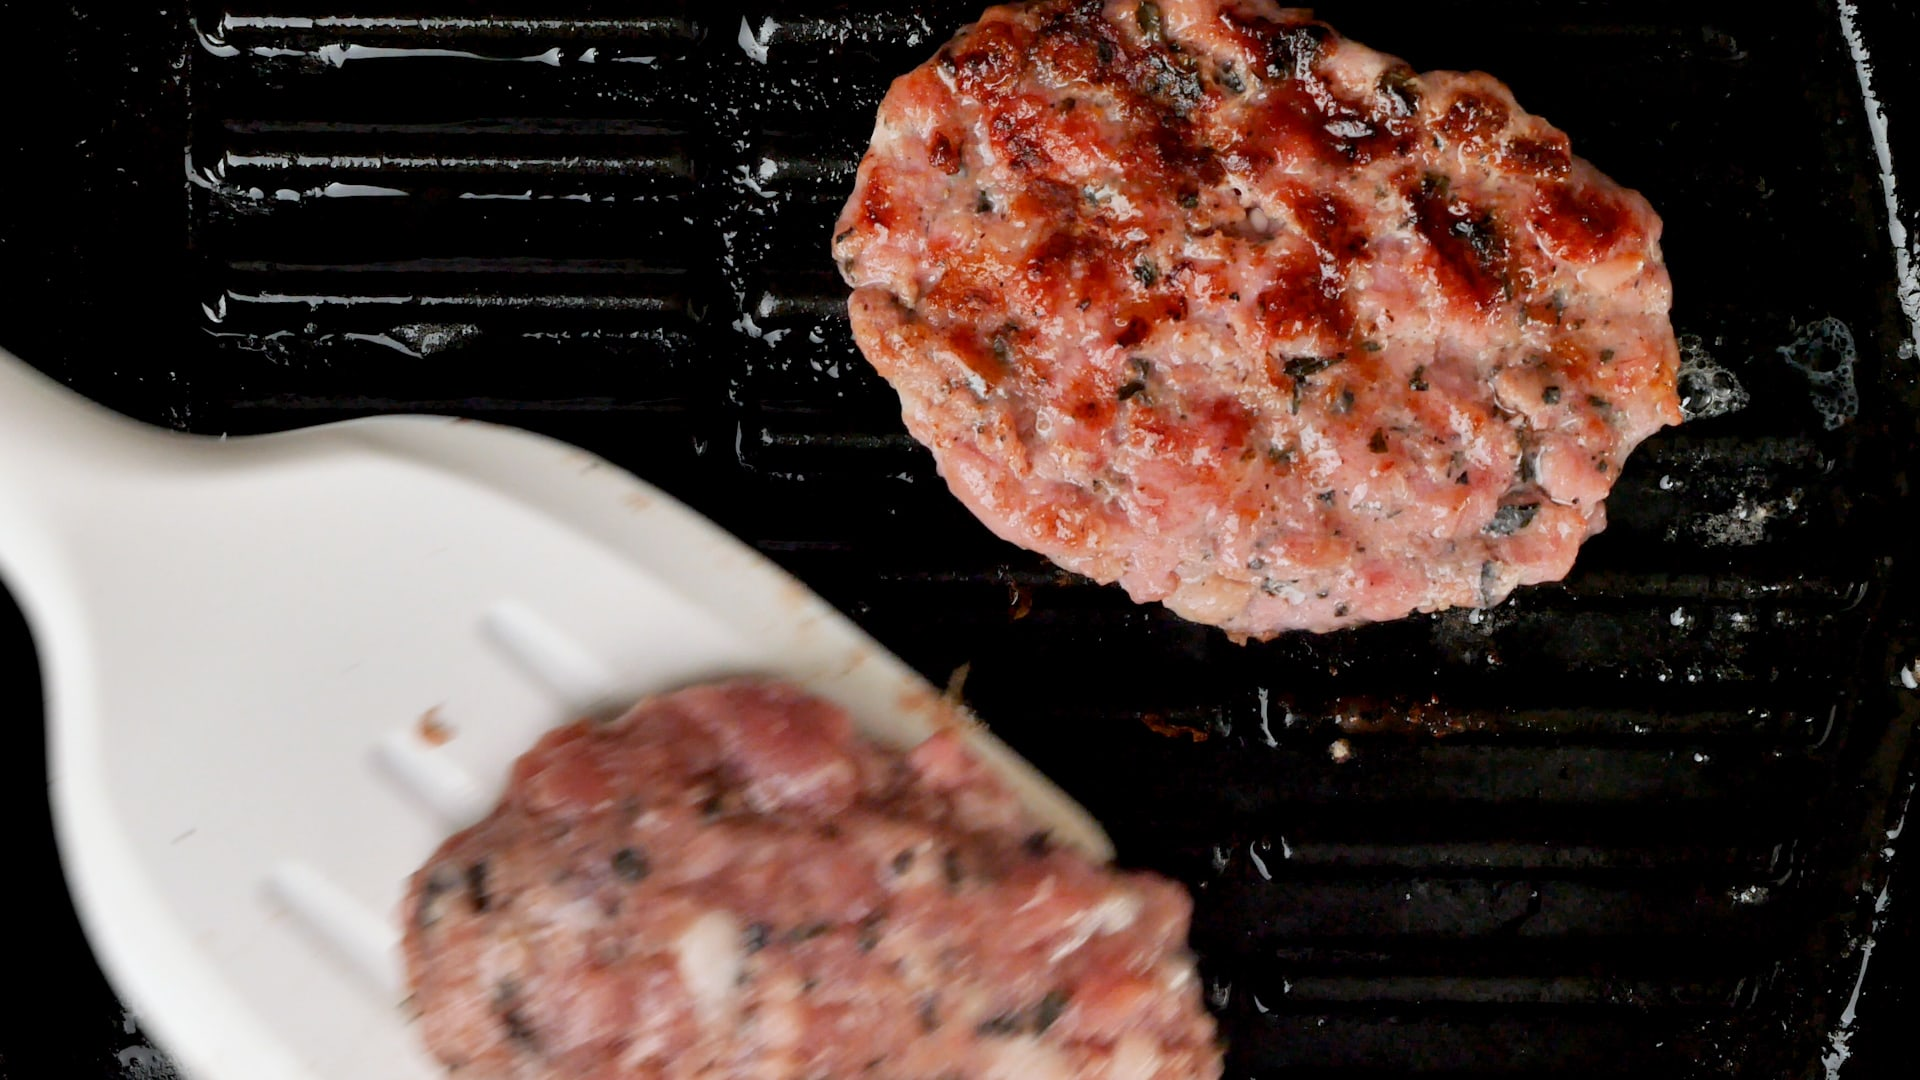 Grilling two patties